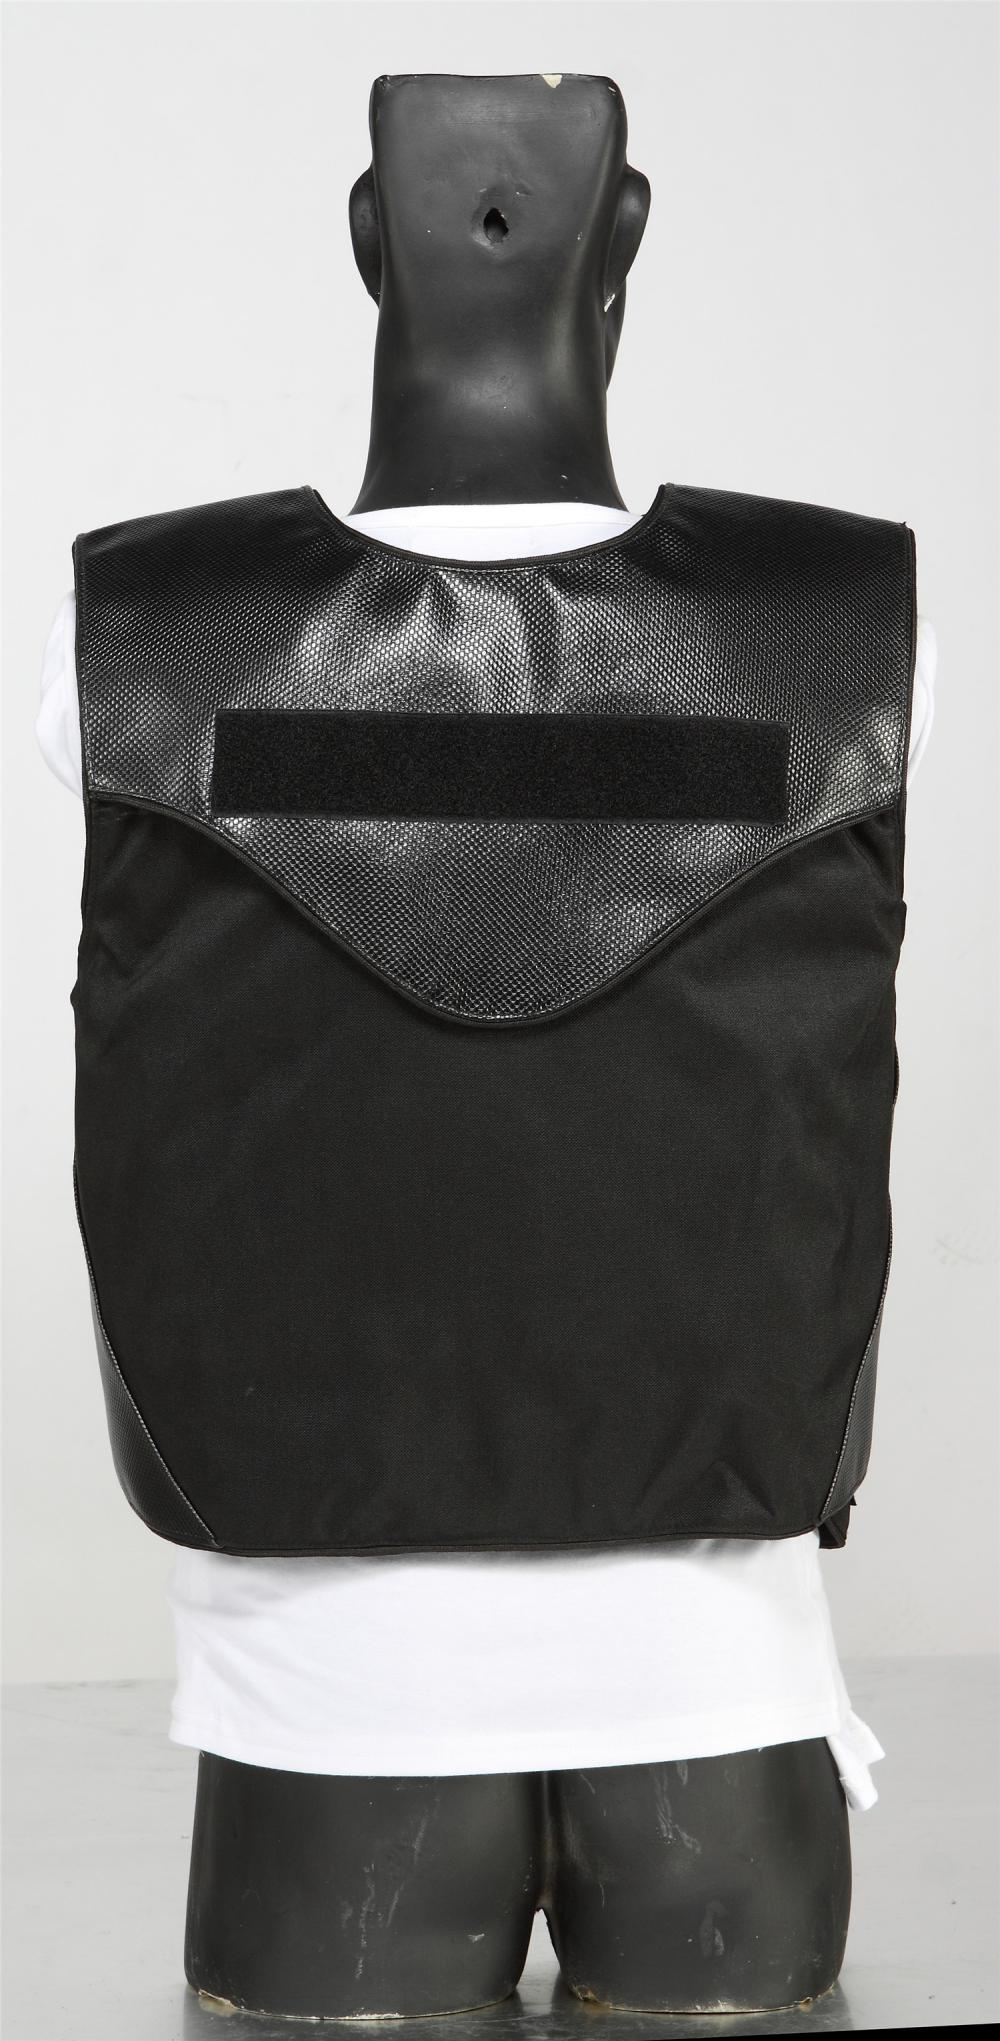 Against AK47 Bulletproof Vest